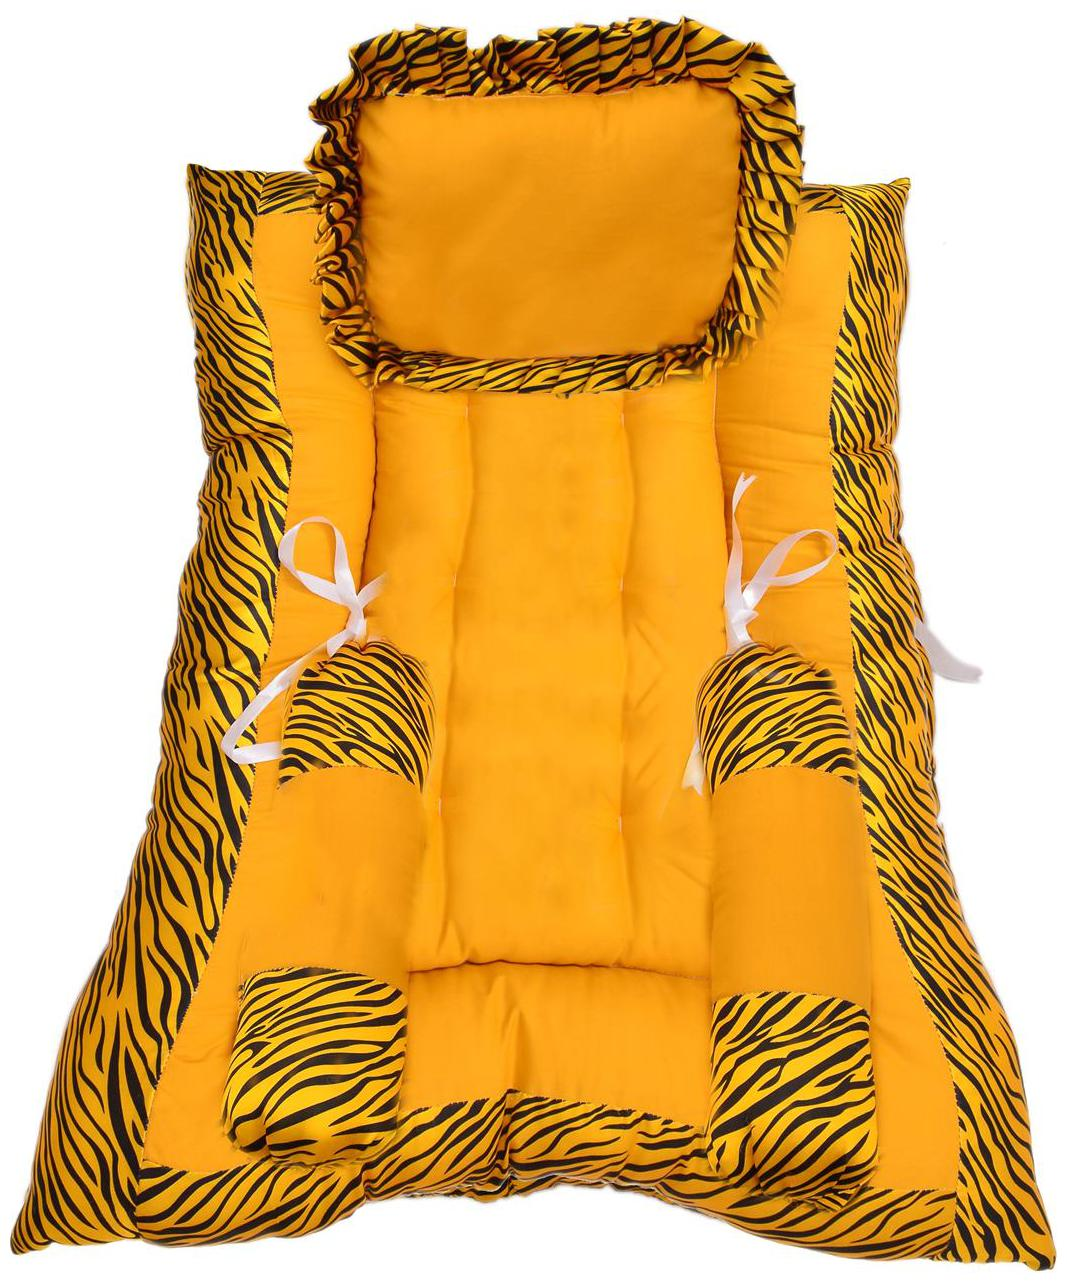 https://assetscdn1.paytm.com/images/catalog/product/F/FA/FASBABY-SLEEPINGET-136597BDCD3ECC/1561504552484_0..jpg